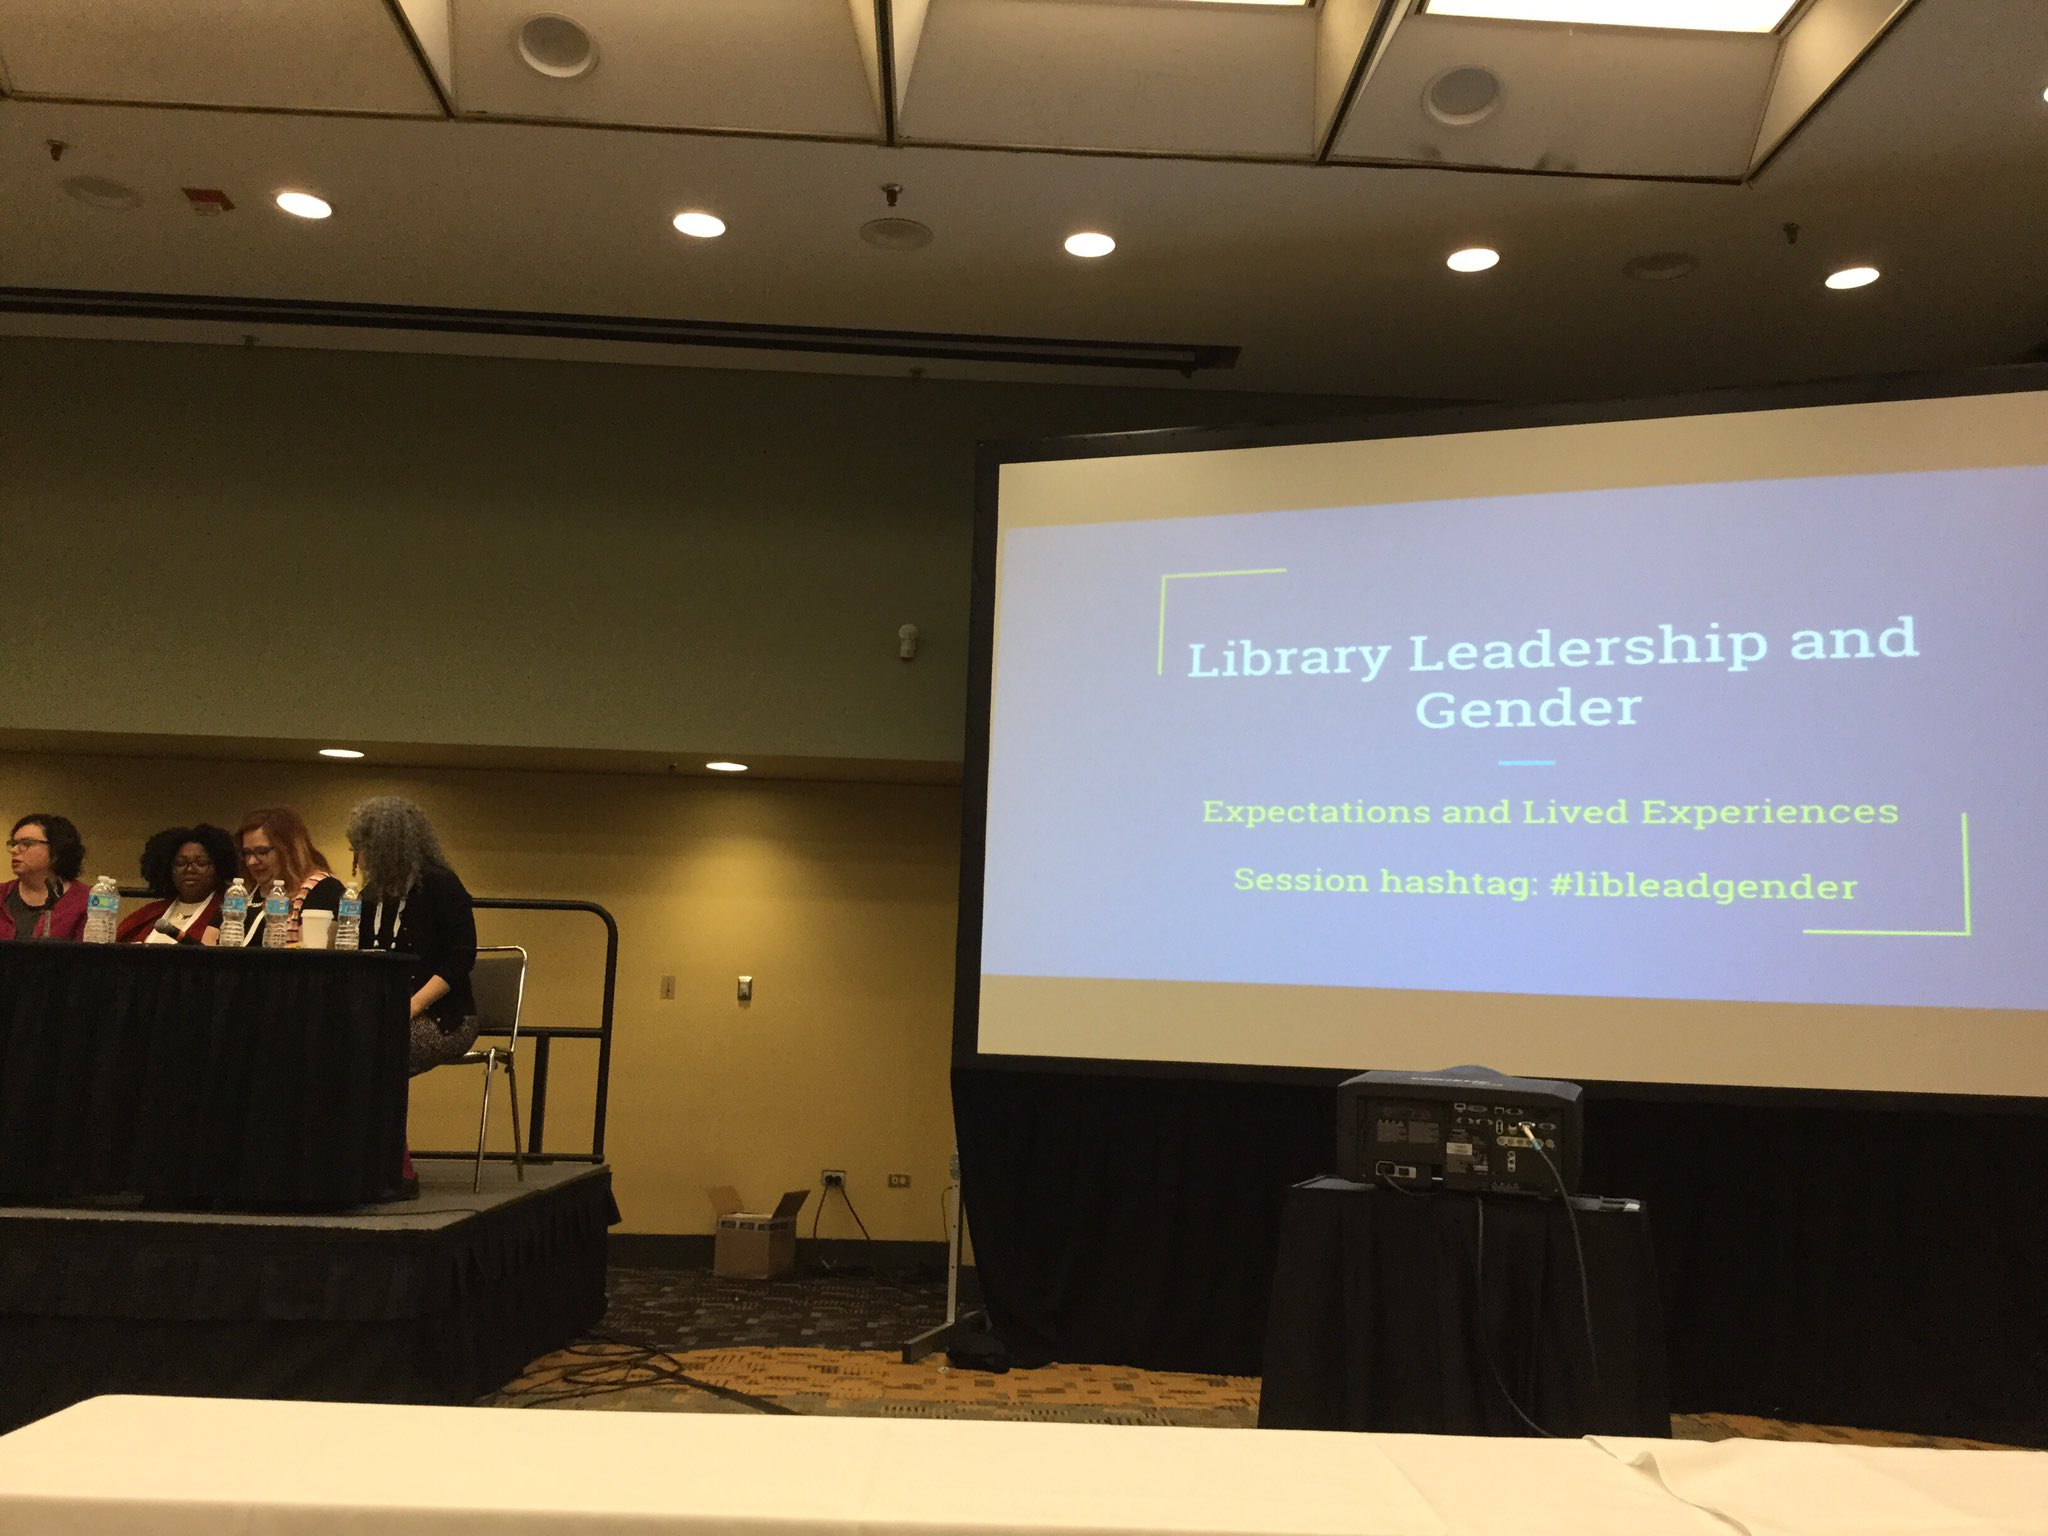 First session at #ACRL2017: #LibLeadGender. I appreciate that there are tables at the front of these rooms for note taking! https://t.co/yIArW4ro0l